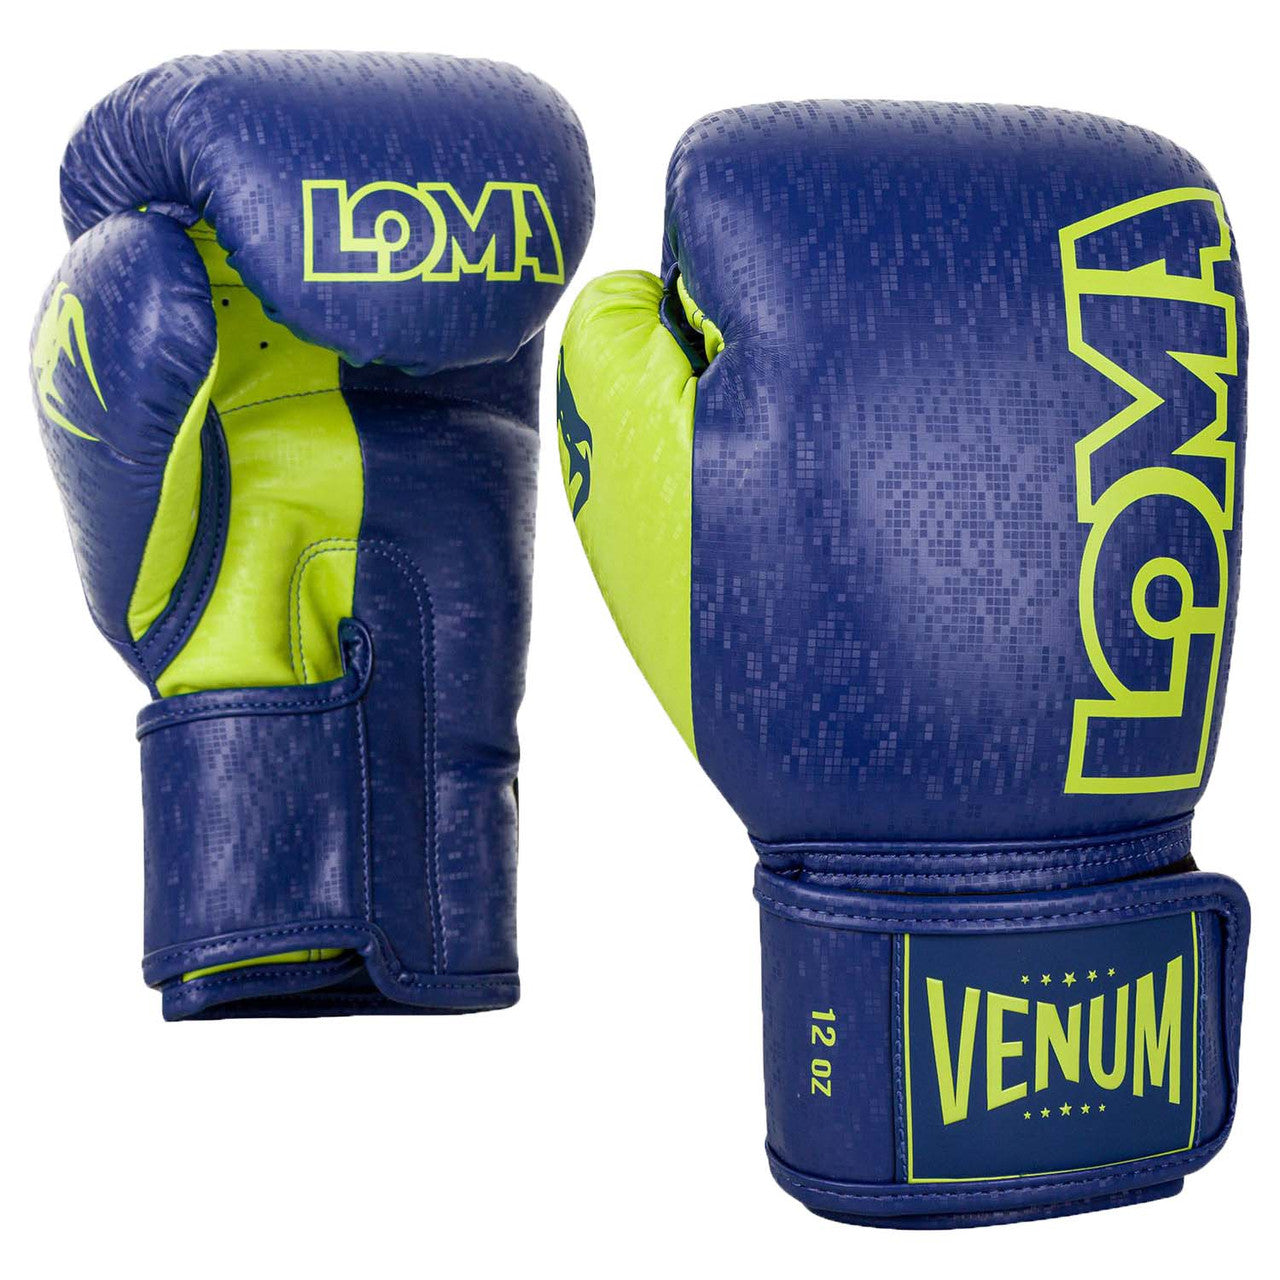 Venum Origins Boxing Gloves Loma Edition | Boxing Gloves | Fight Co